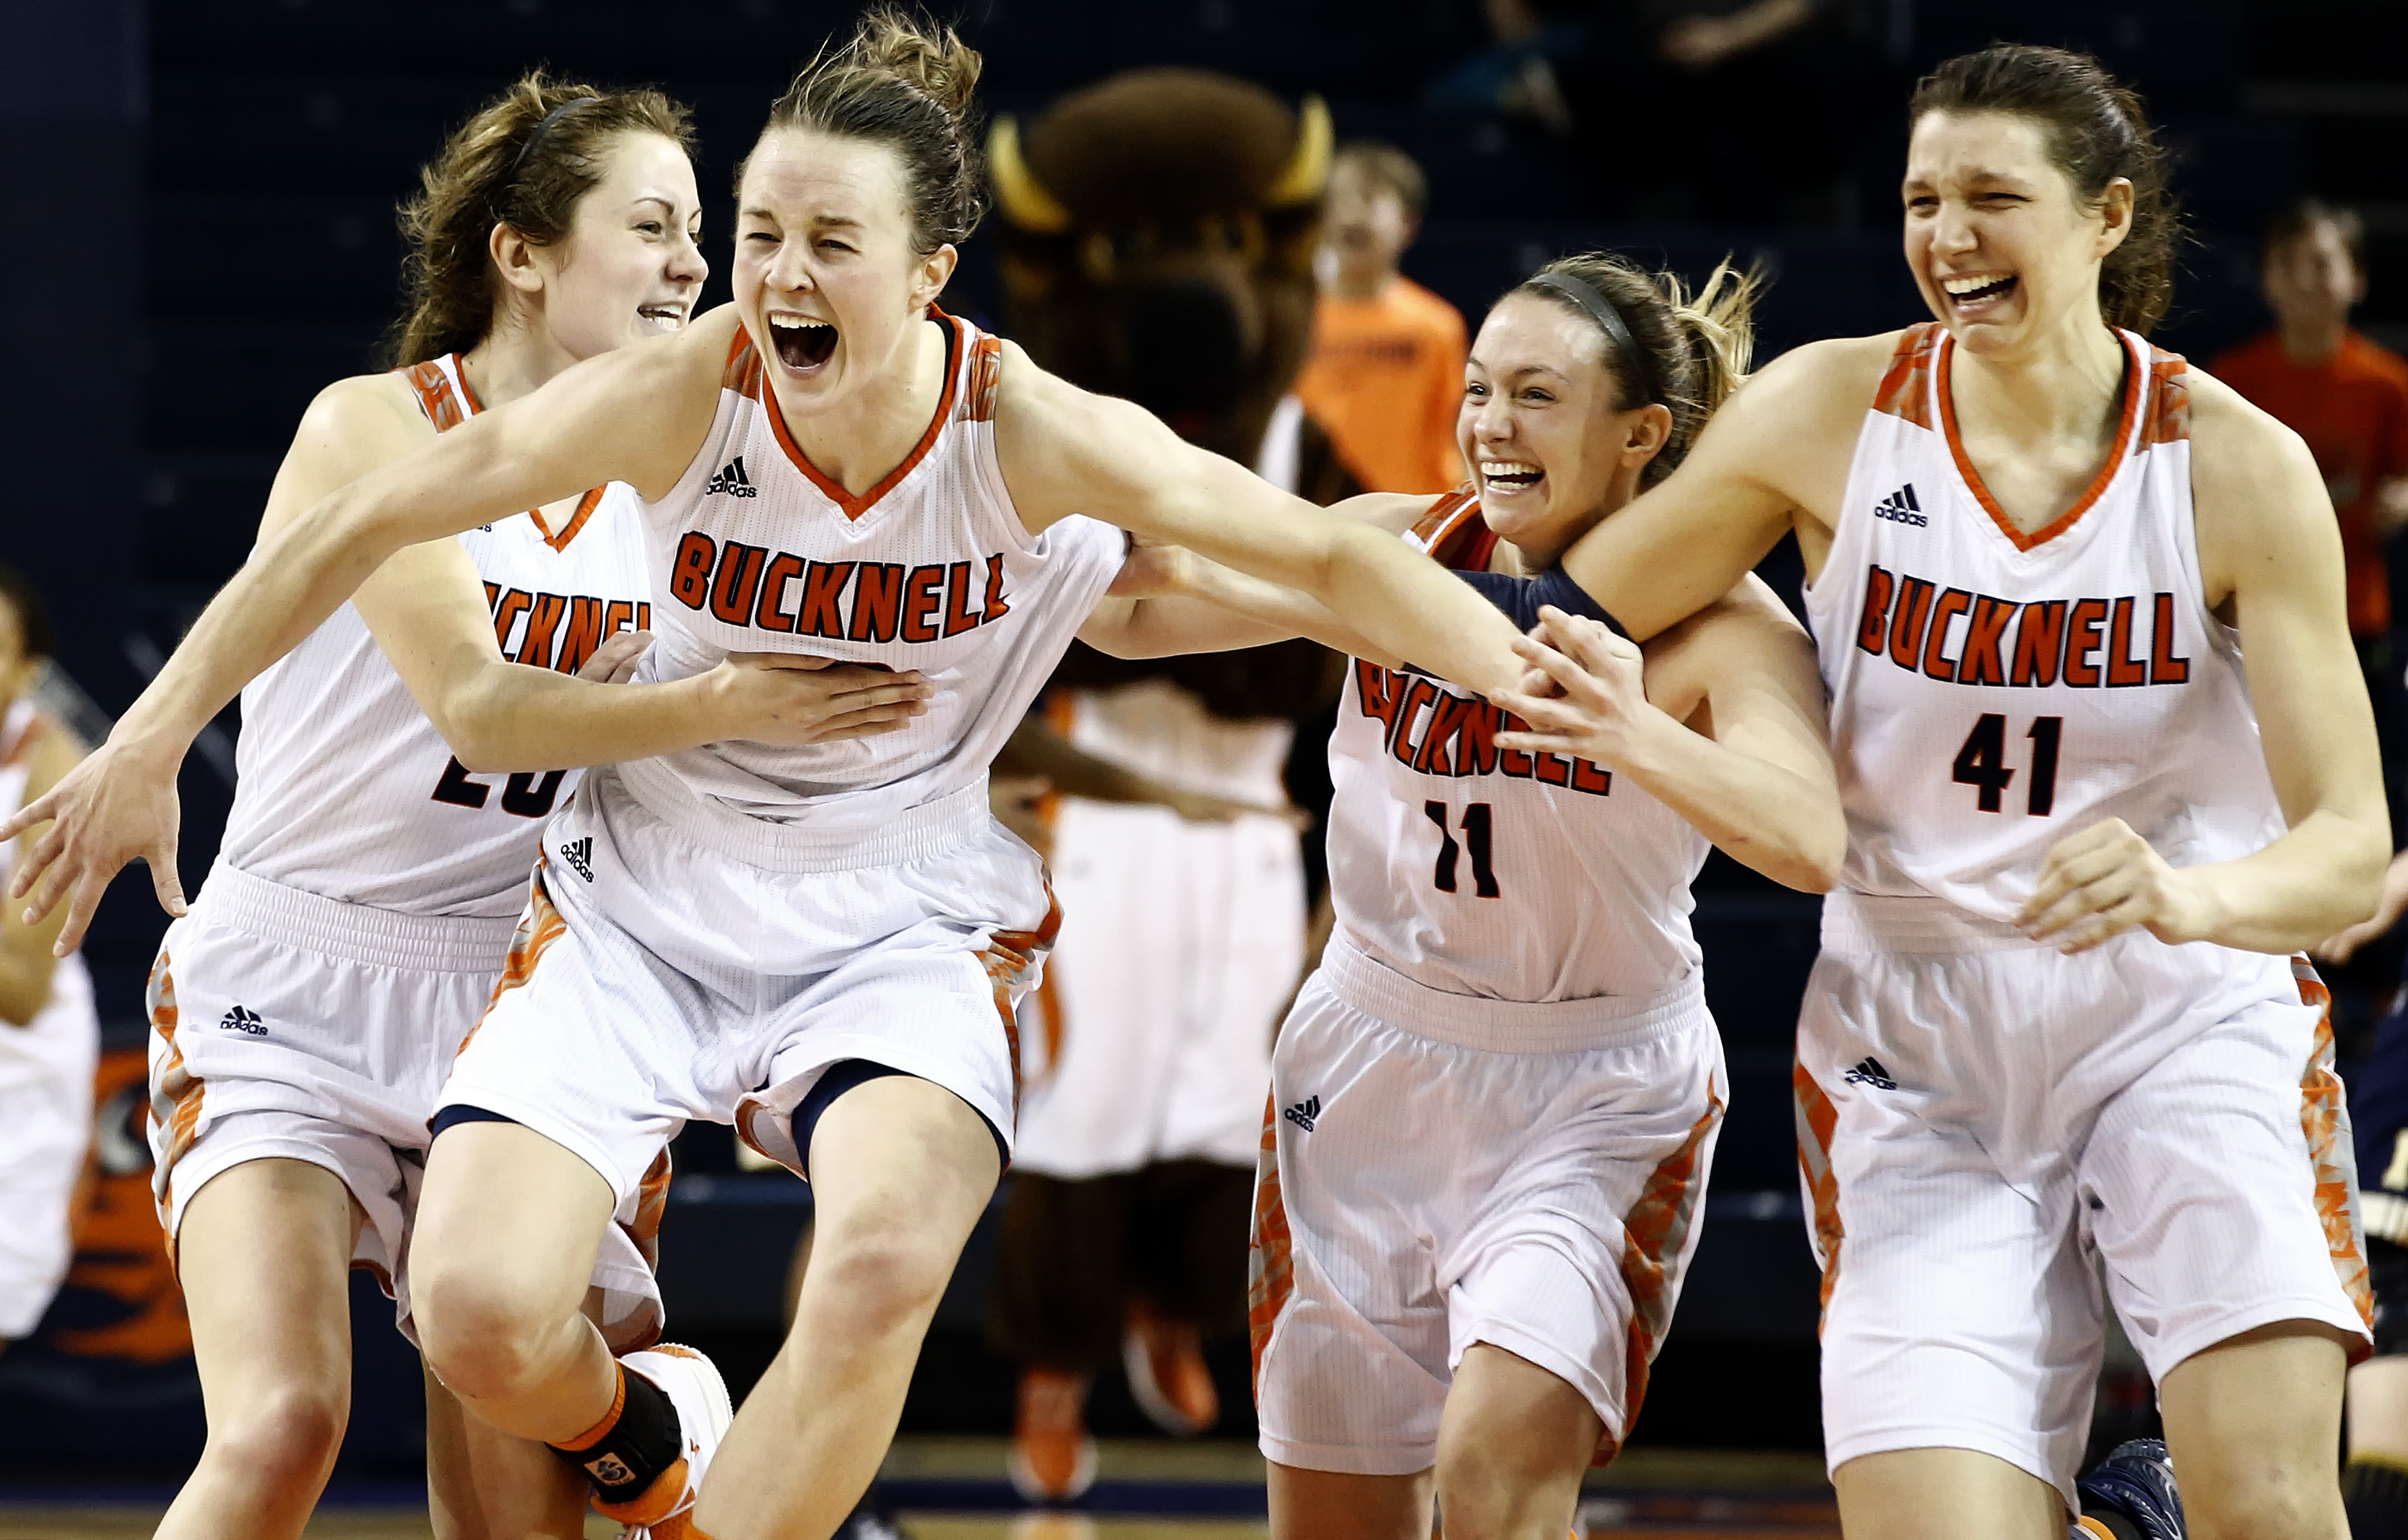 FILE - In this Sunday, March 12, 2017, file photo, Bucknell's Kate Walker (20), Claire DeBoer (12), Megan McGurk (11) and Sune Stewart (41) celebrate after defeating Navy in overtime of an NCAA college basketball Patriot League Championship game in Lewisb